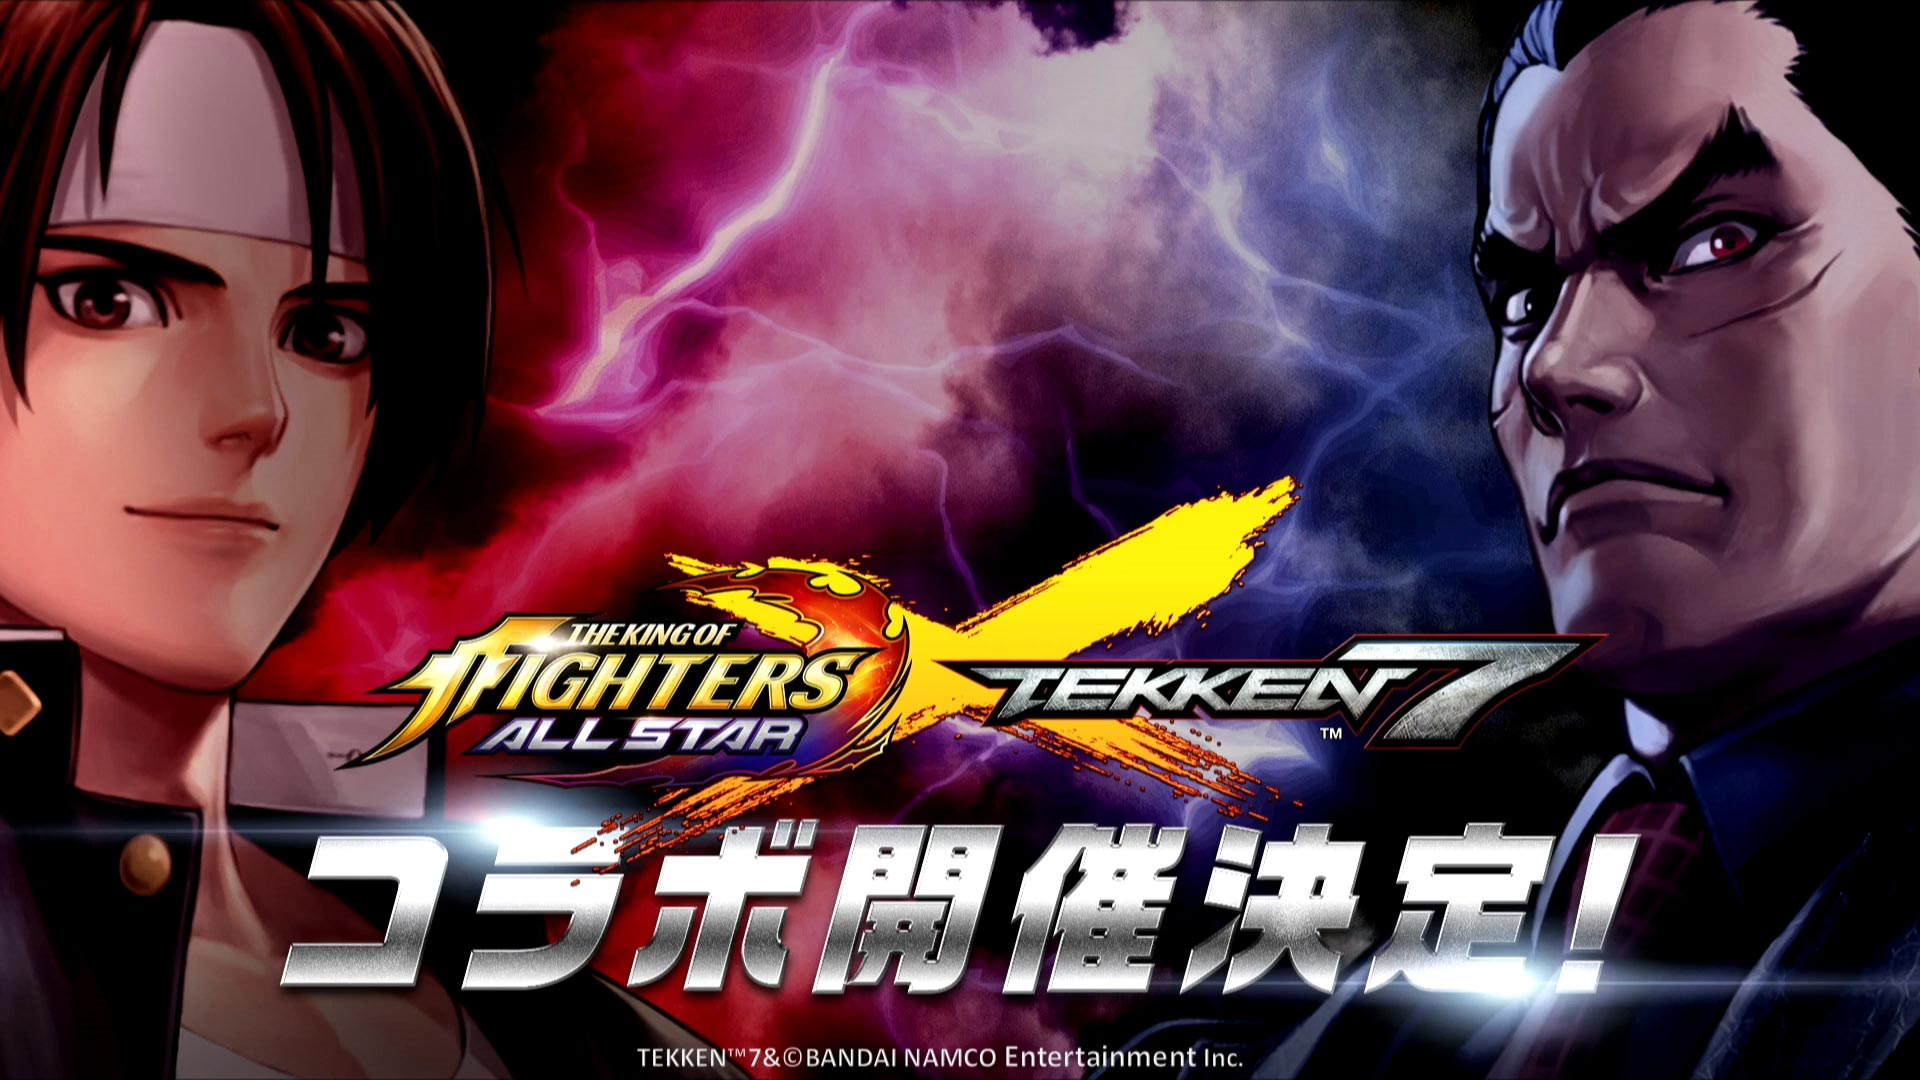 King of Fighters All Star 1 out of 3 image gallery